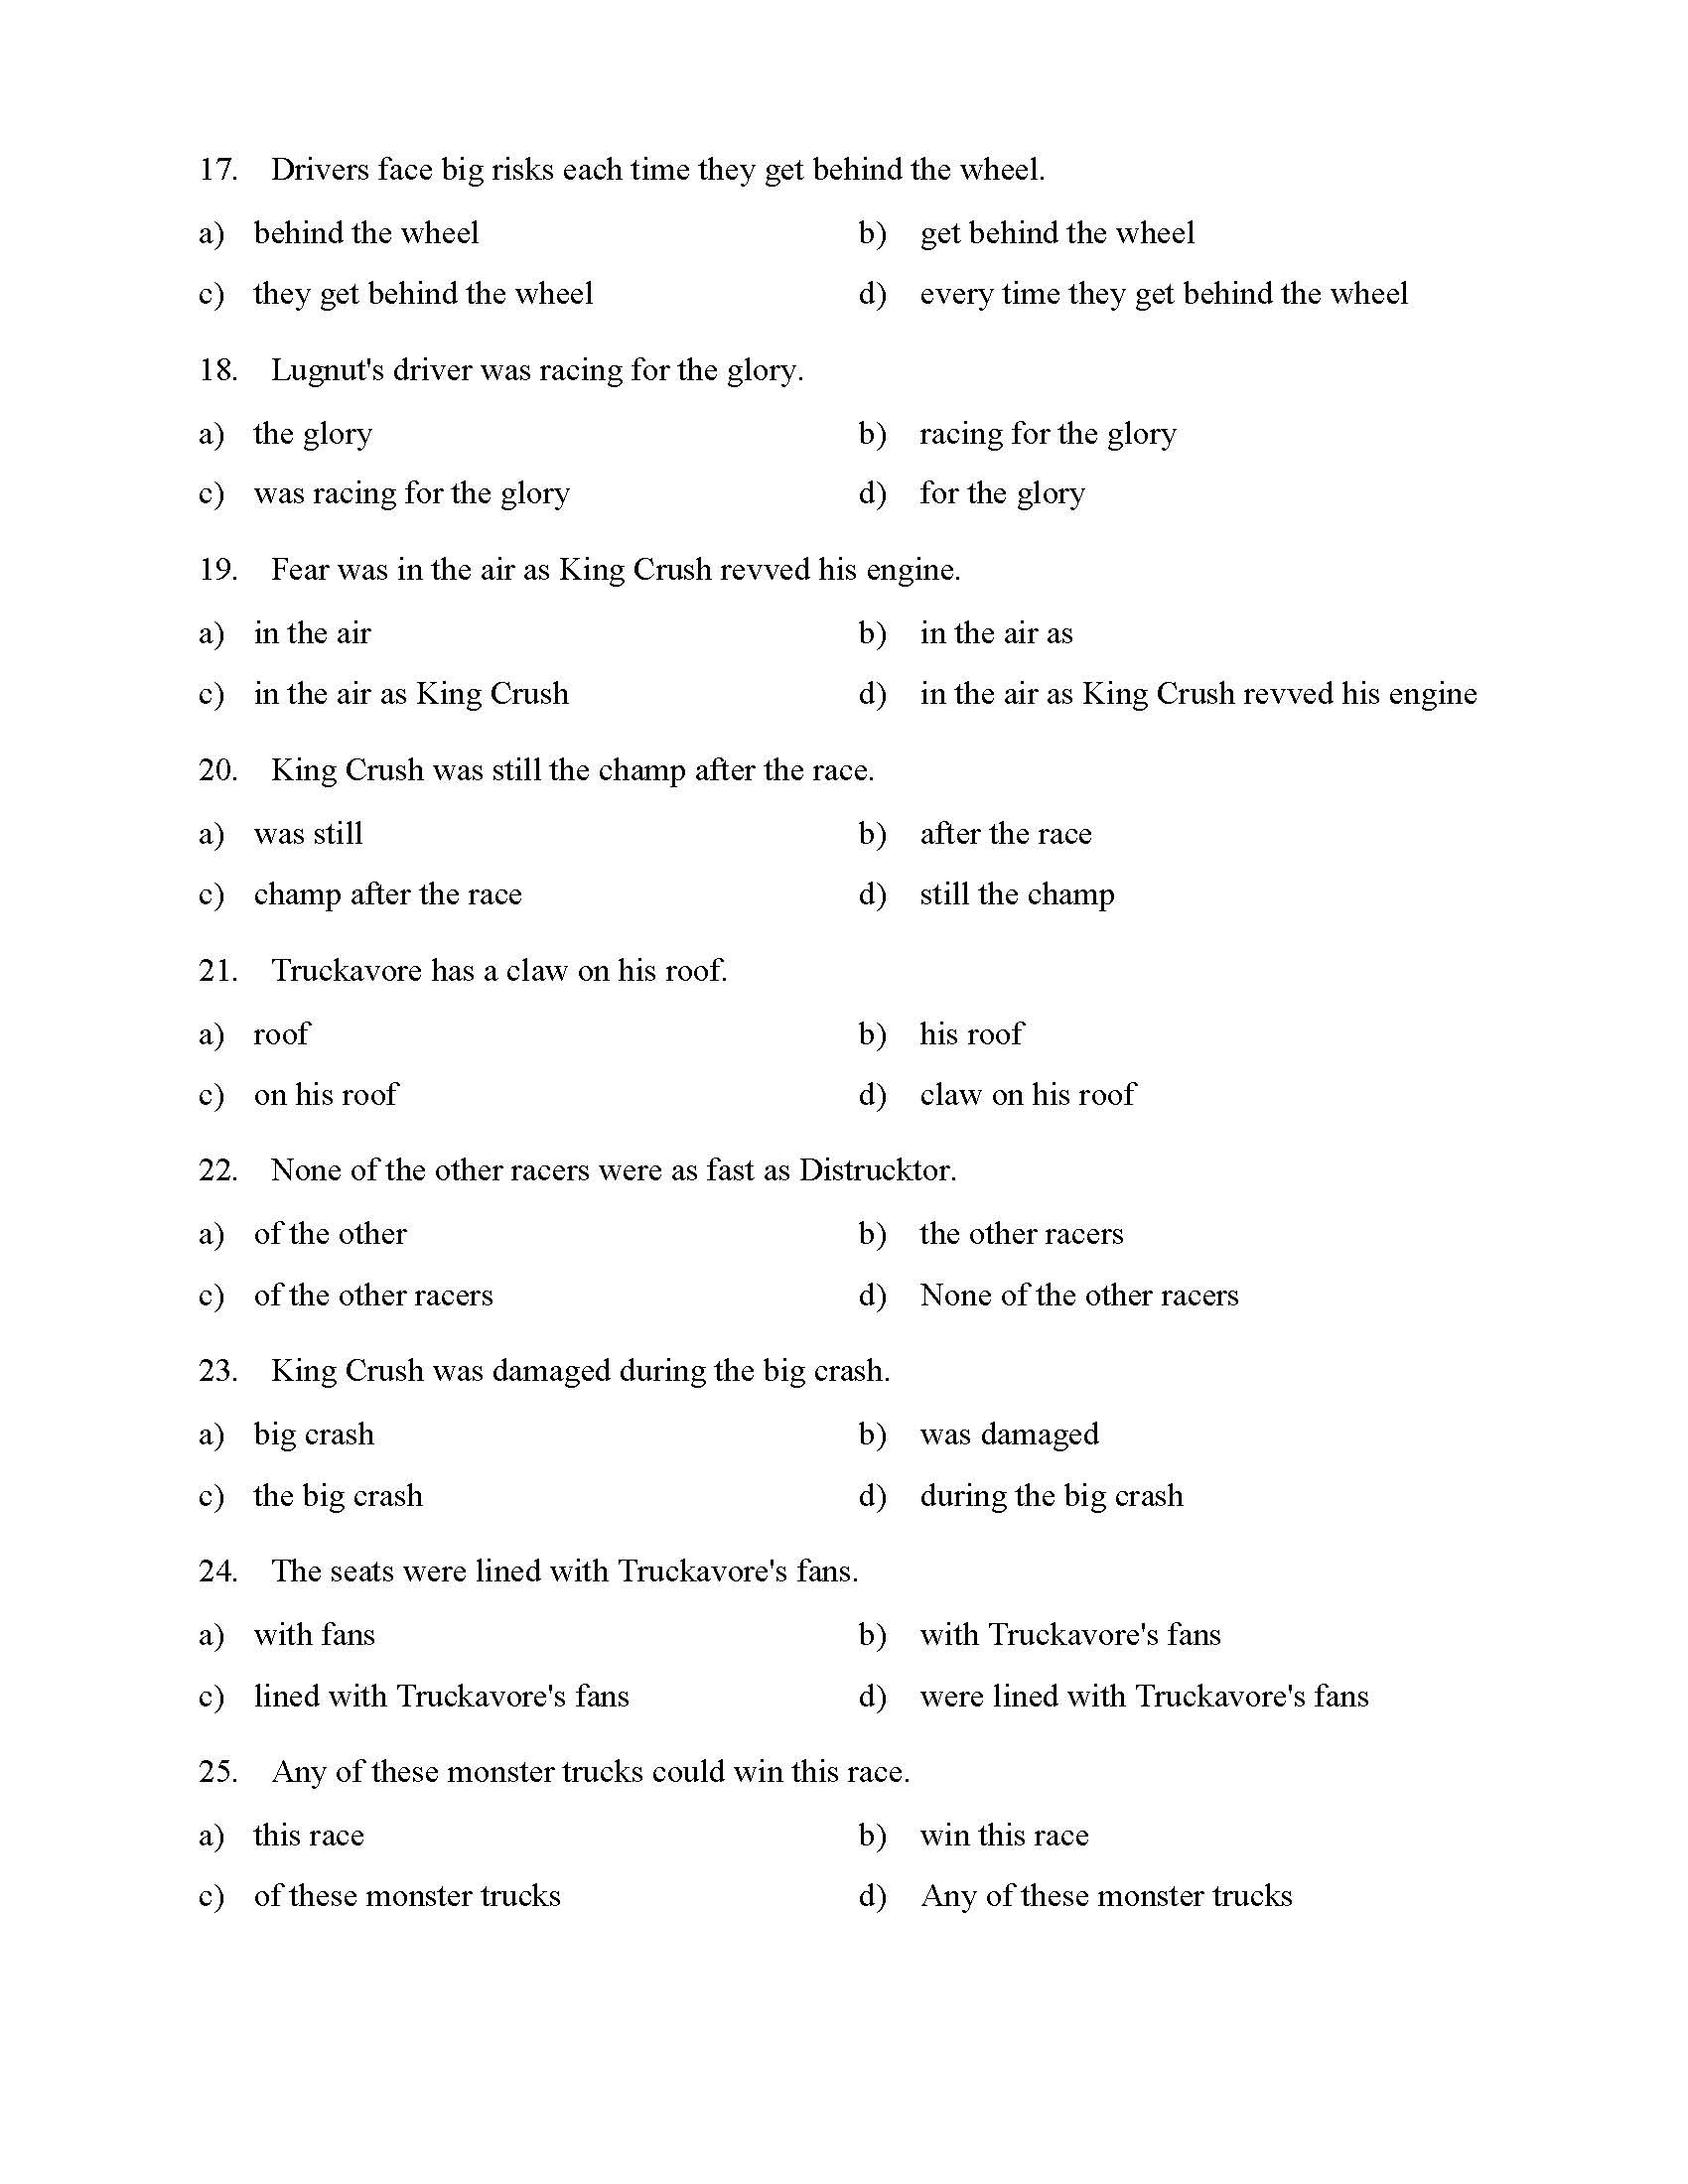 3rd Grade Preposition Worksheets Prepositional Phrases Worksheet 1 Reading Level 1